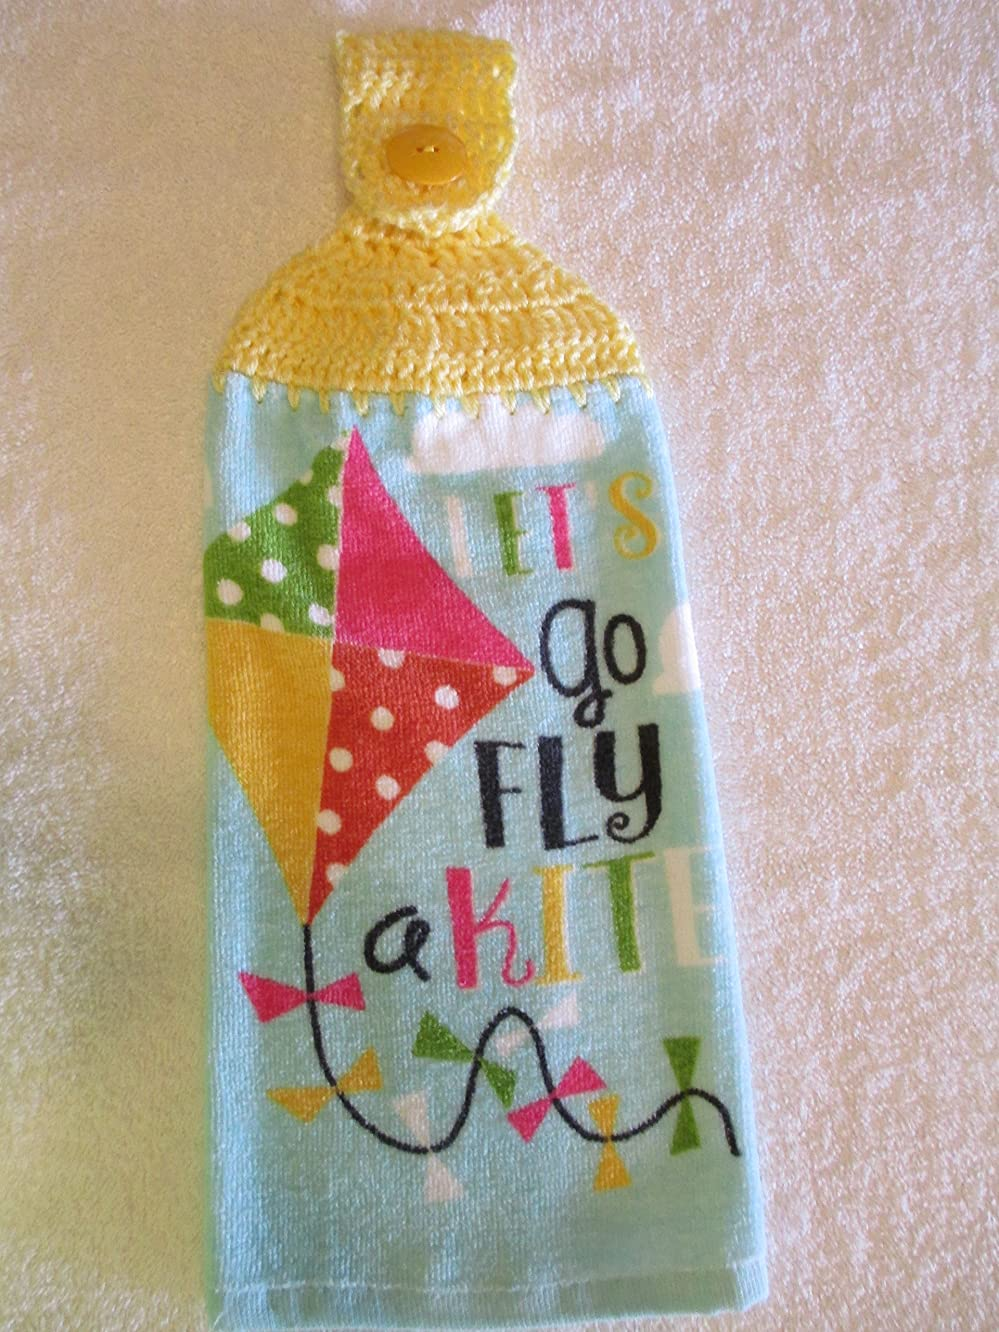 Crocheted Let's Go Fly a Kite Kitchen Towel with Lemon Yellow Yarn